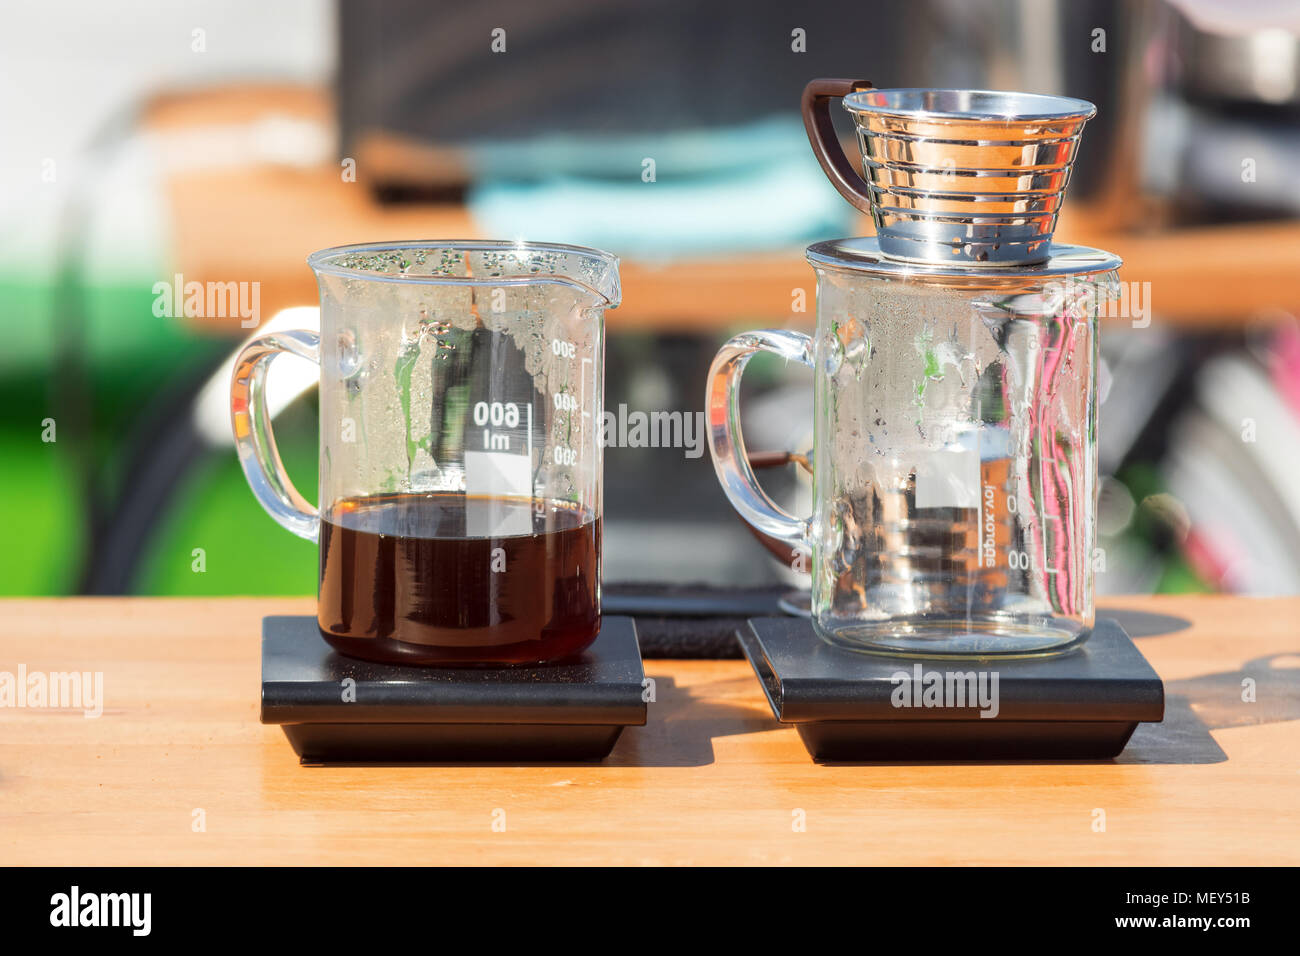 Making pour over coffee at the street market. Rge glass cups with dripper and filter - Stock Image